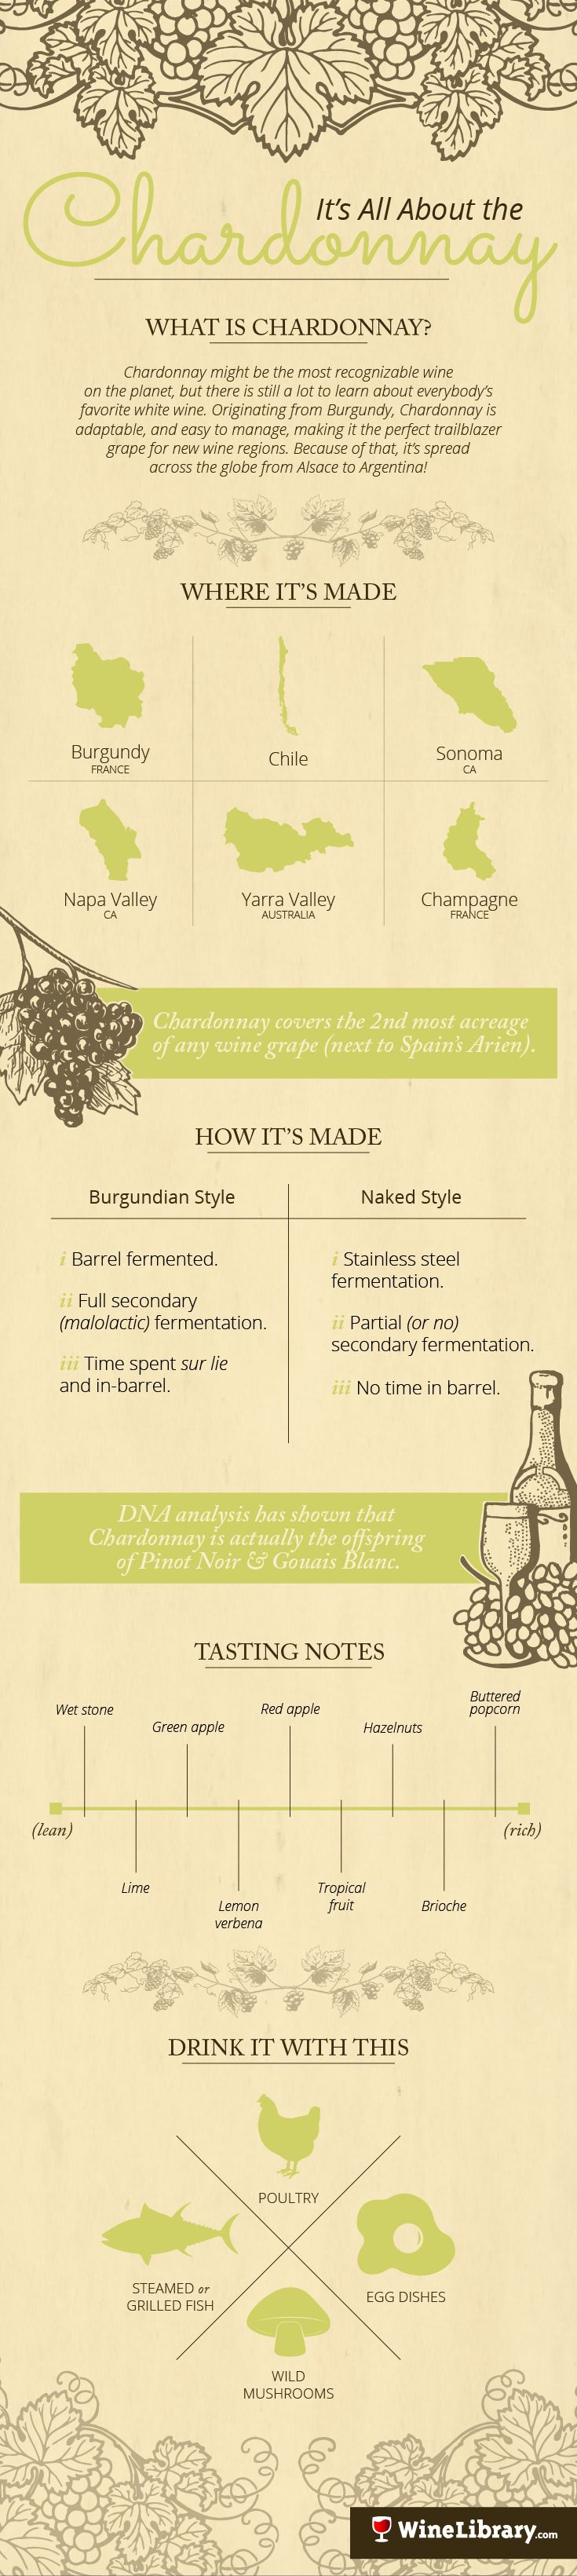 There is a lot to learn about Chardonnay! Test your knowledge of the world's…